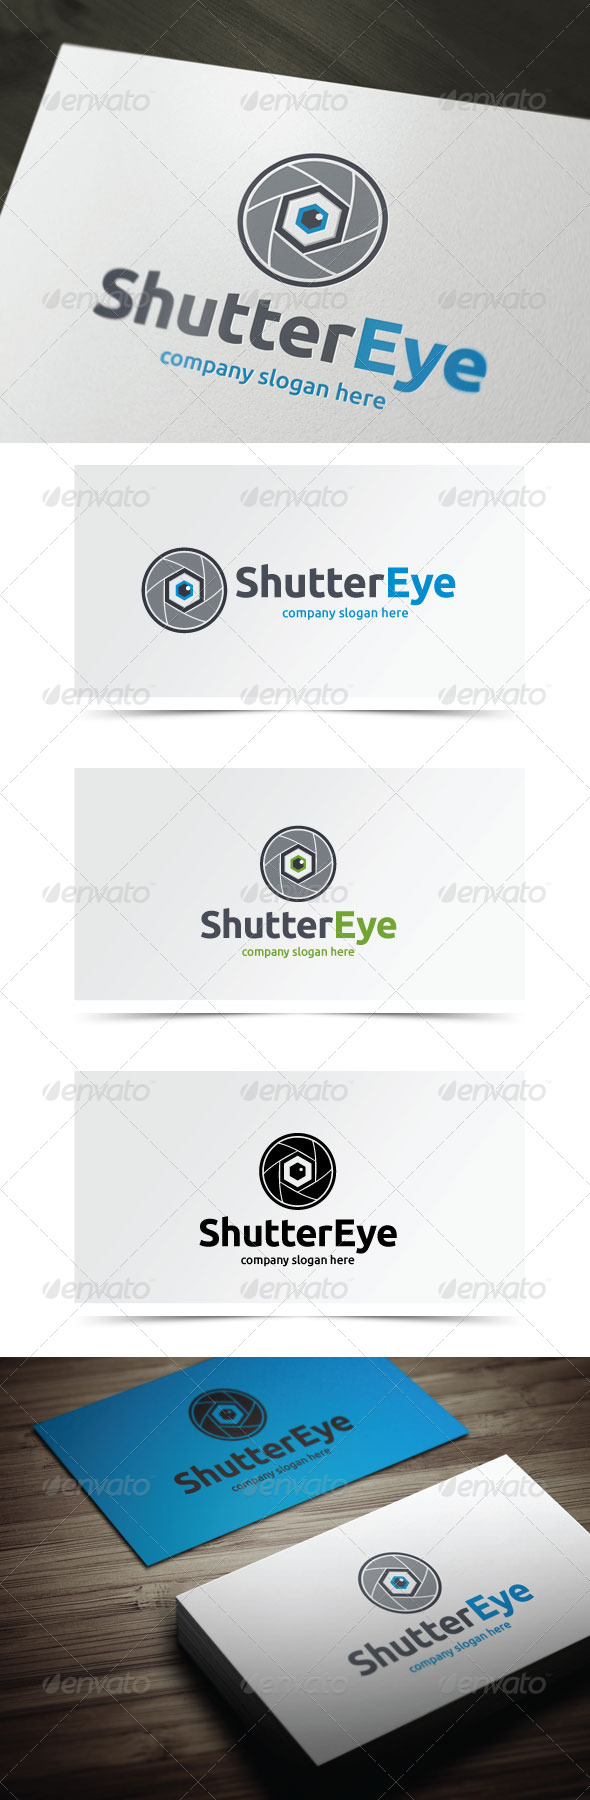 GraphicRiver Shutter Eye 5658415